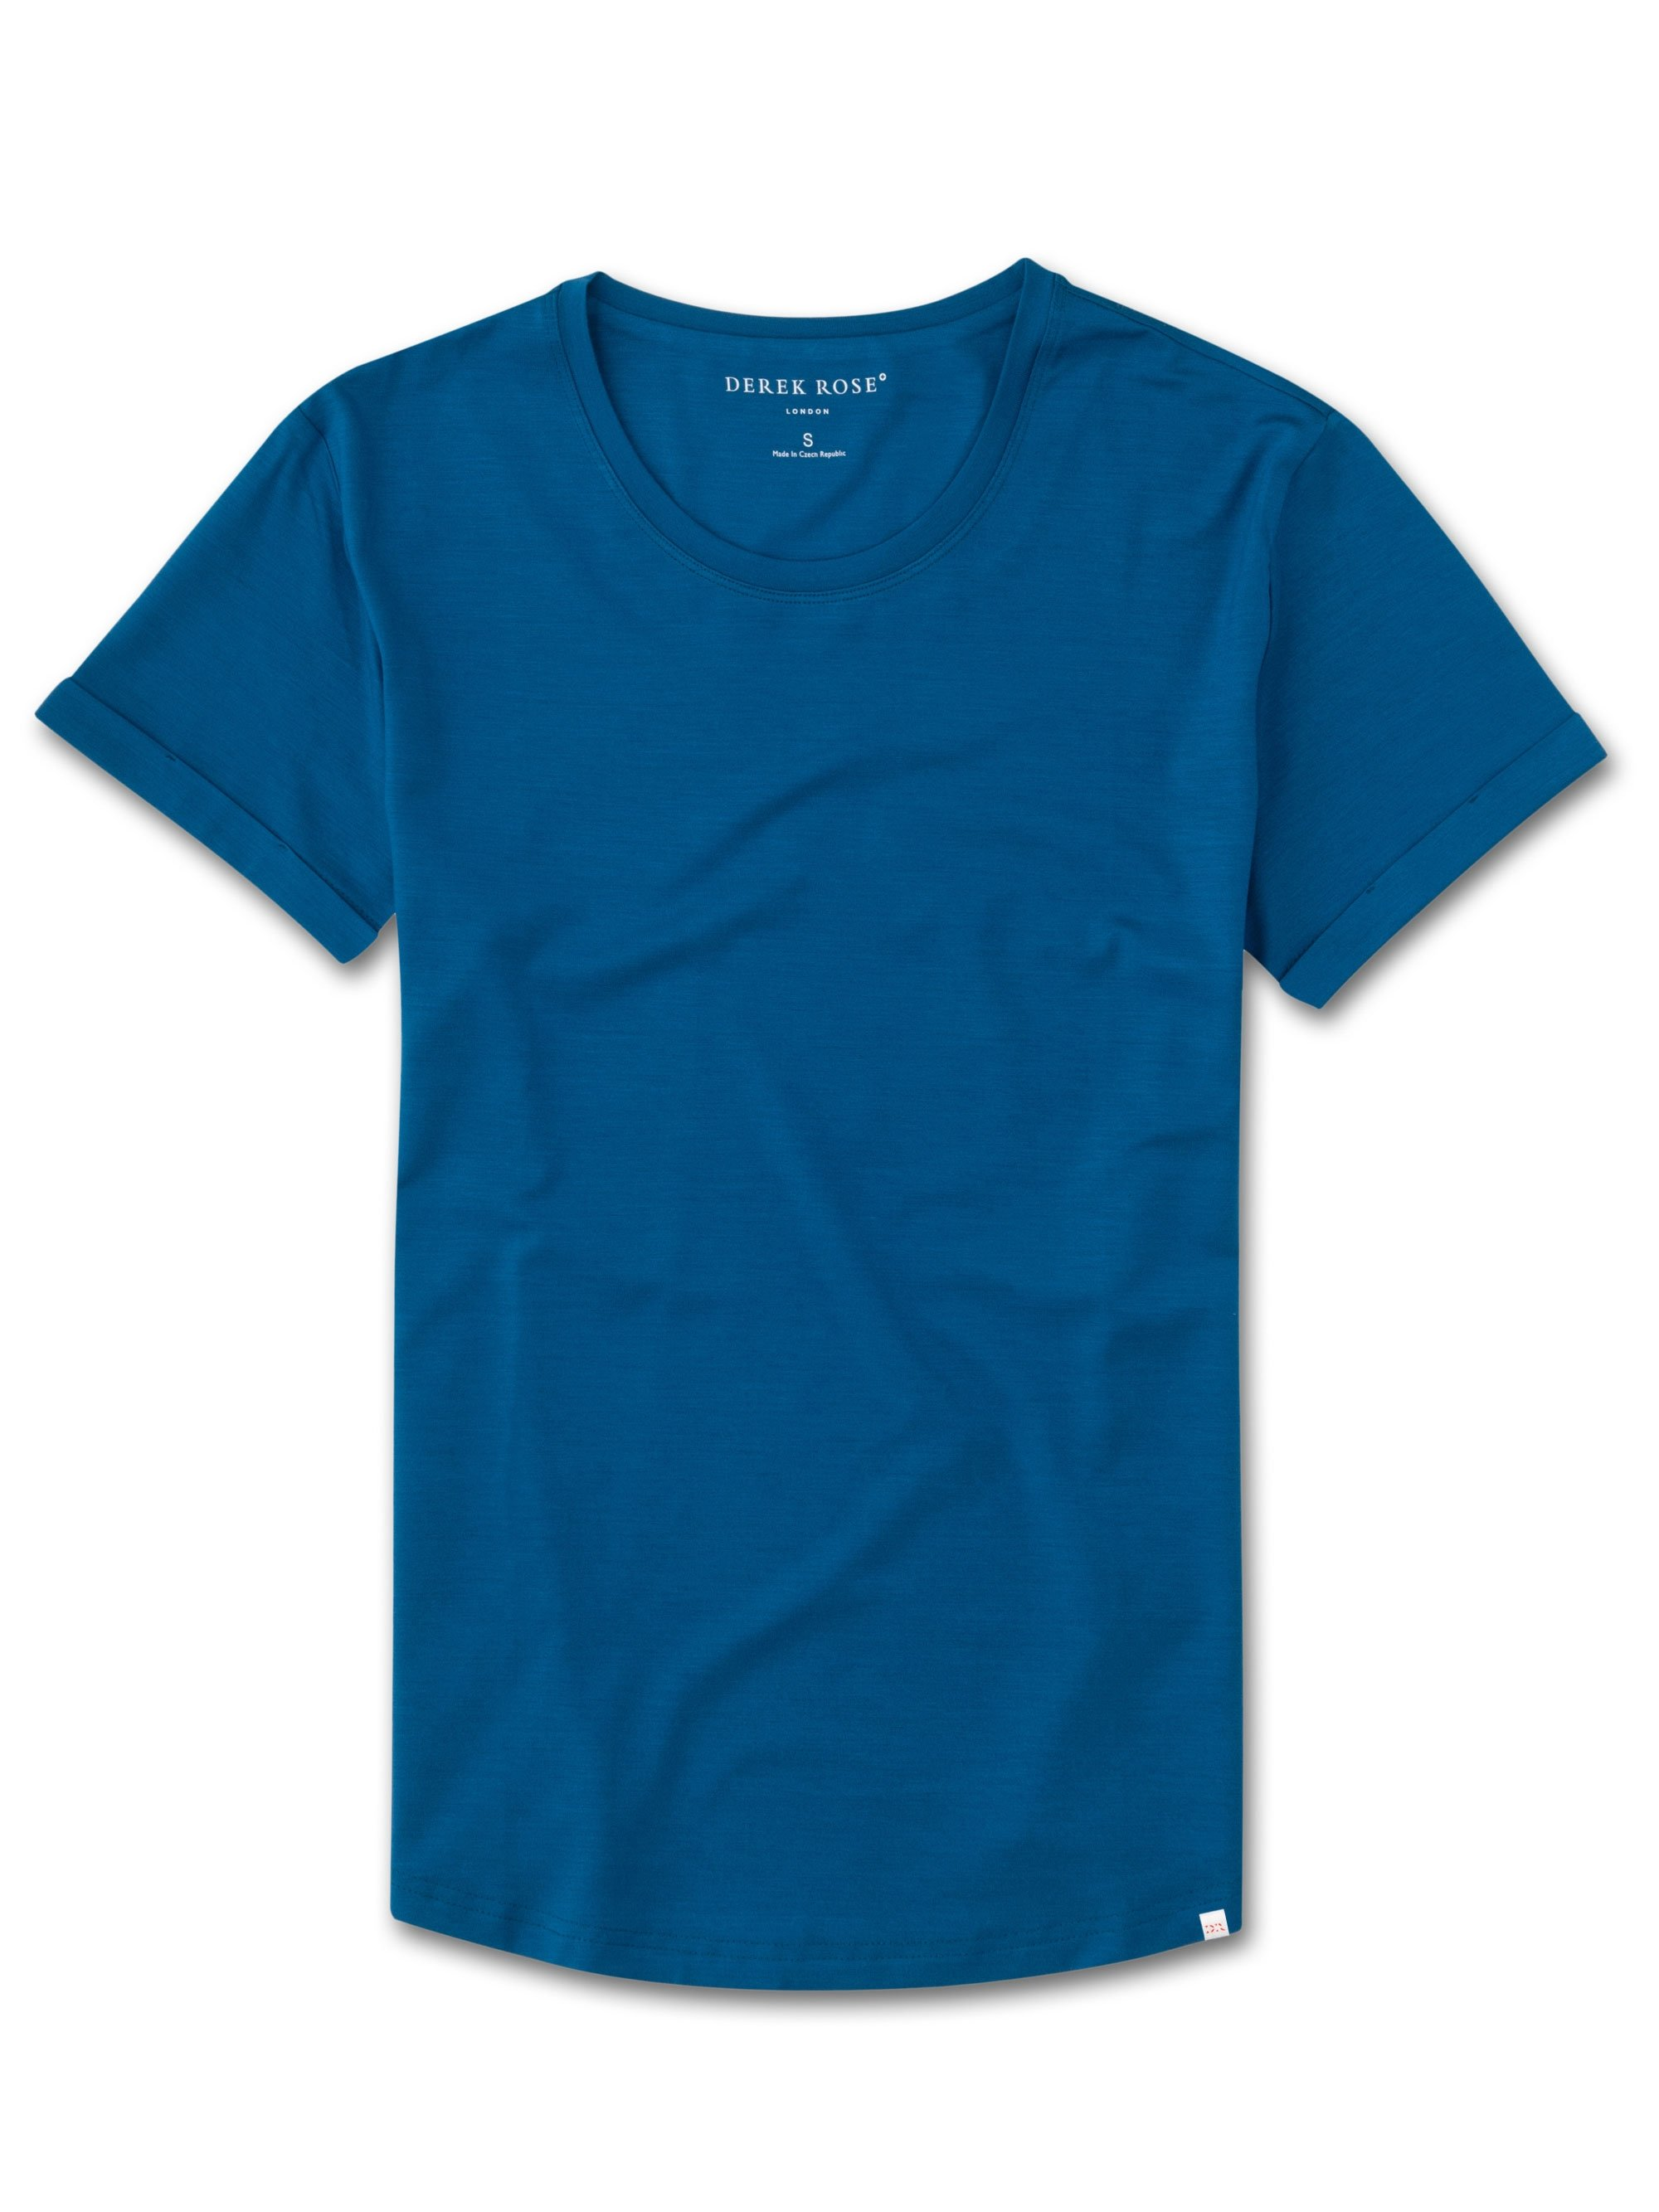 Women's Leisure T-Shirt Lara Micro Modal Stretch Ocean